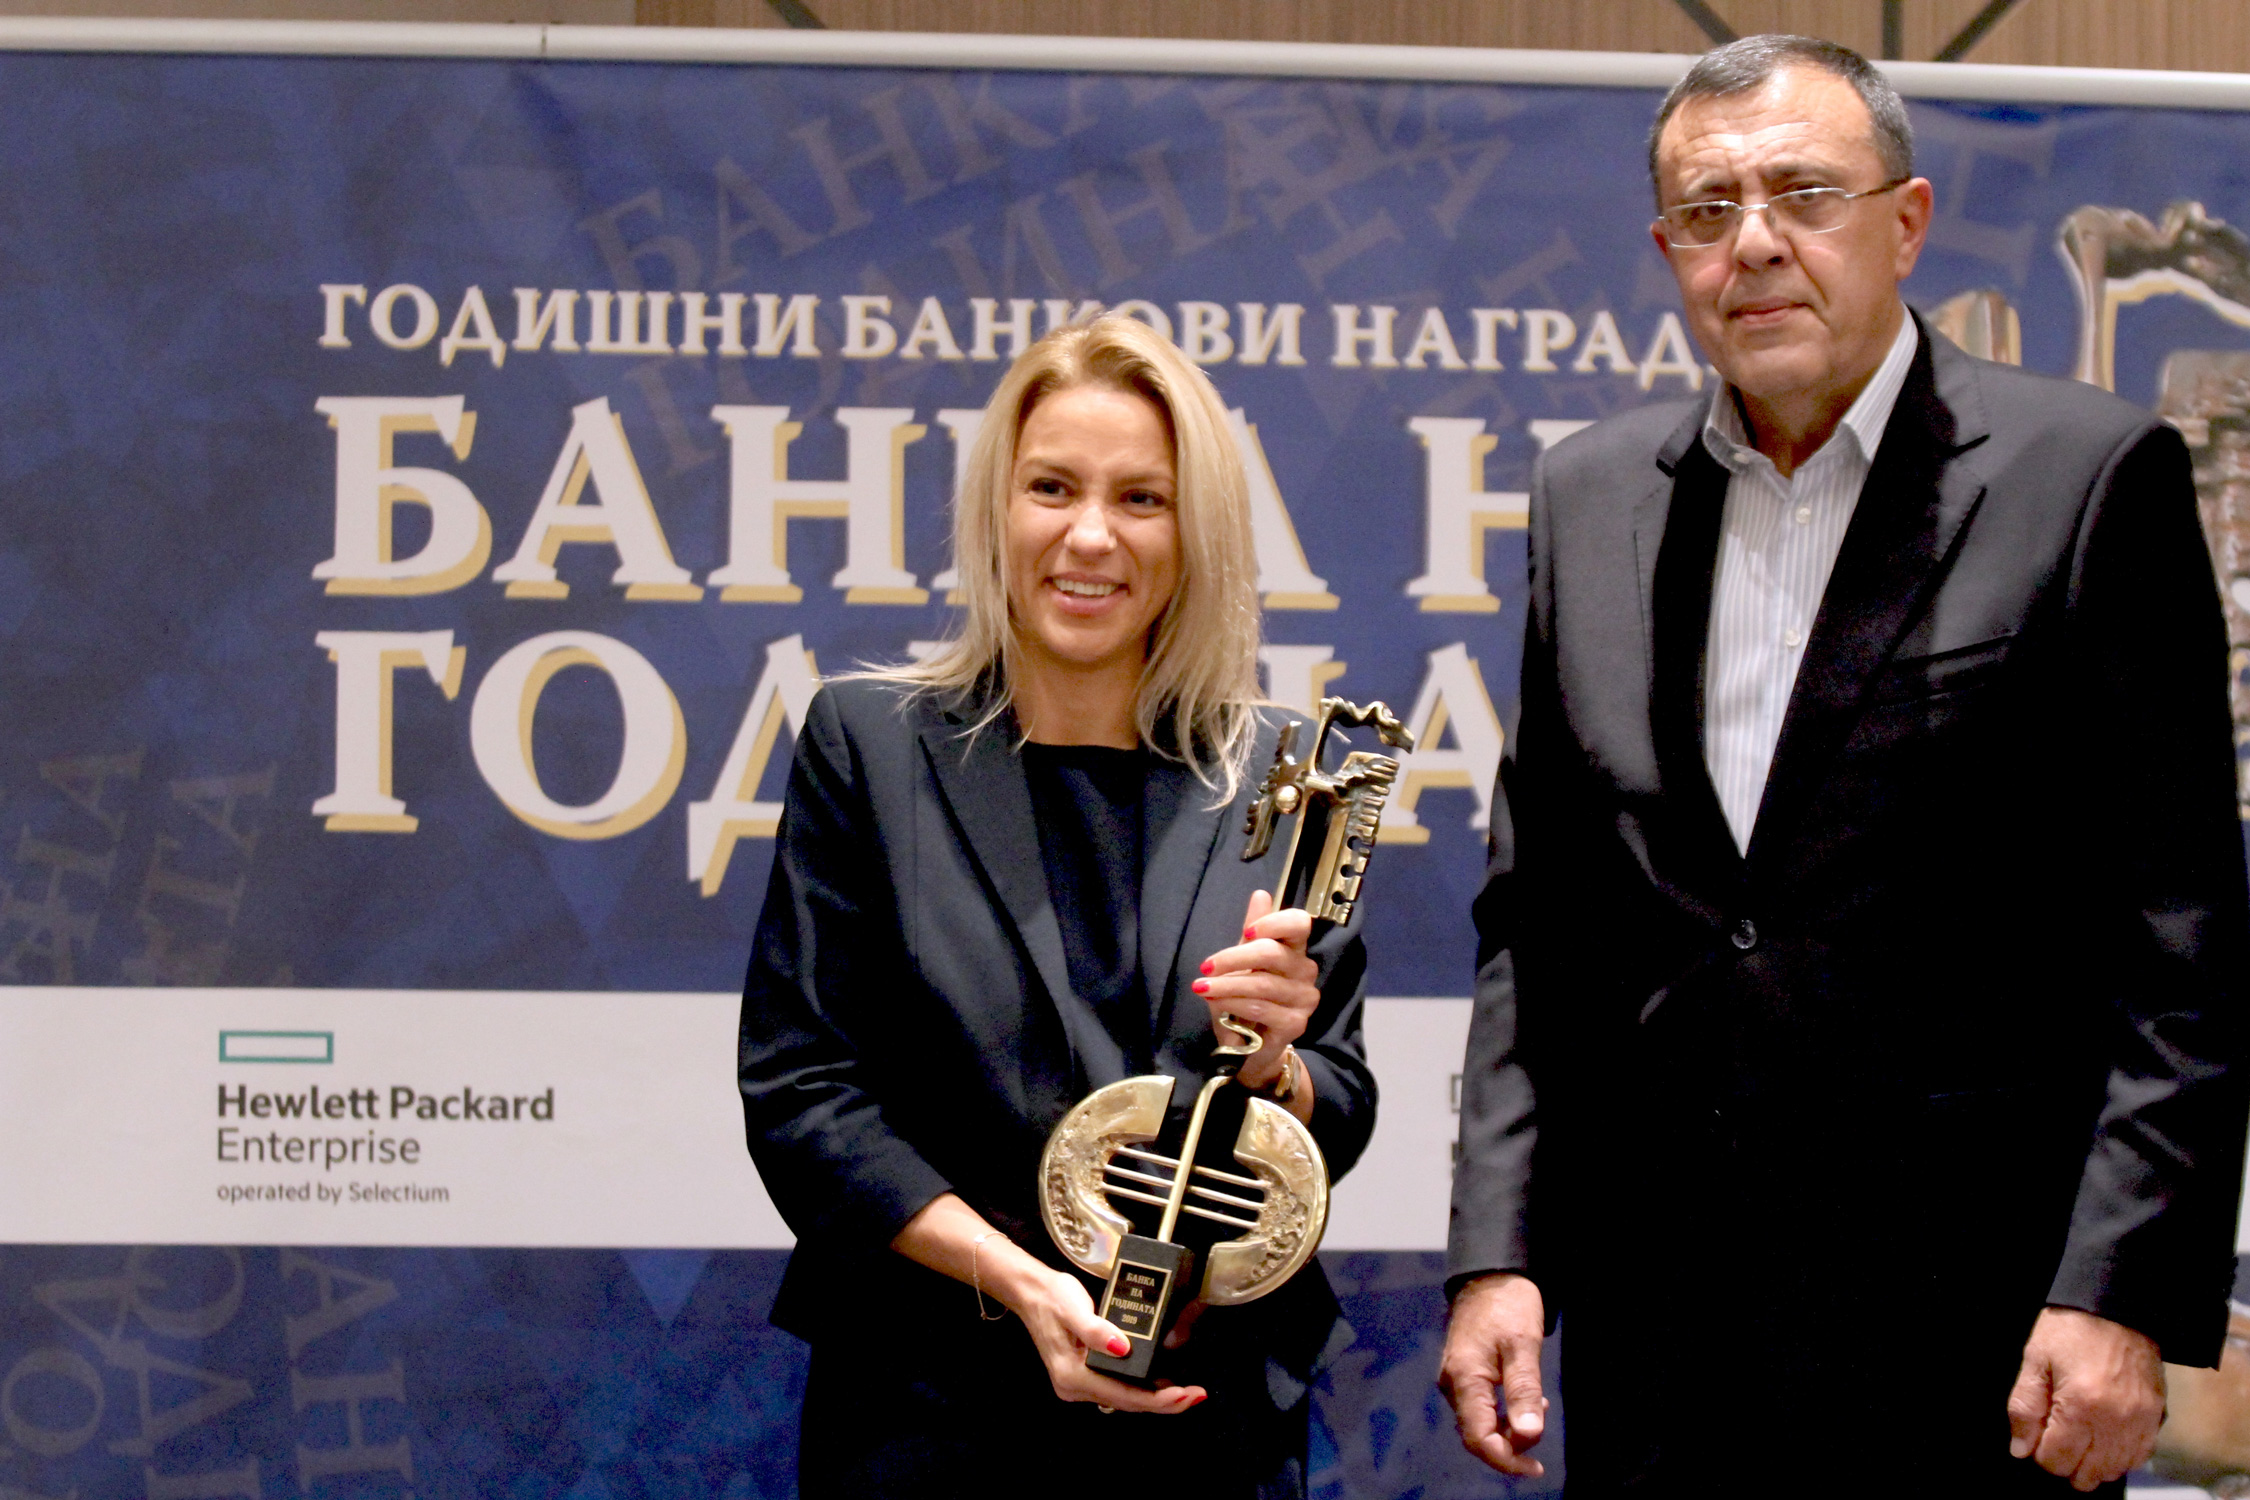 Photo_Postbank_Bank-of-the-year_P.Dimitrova